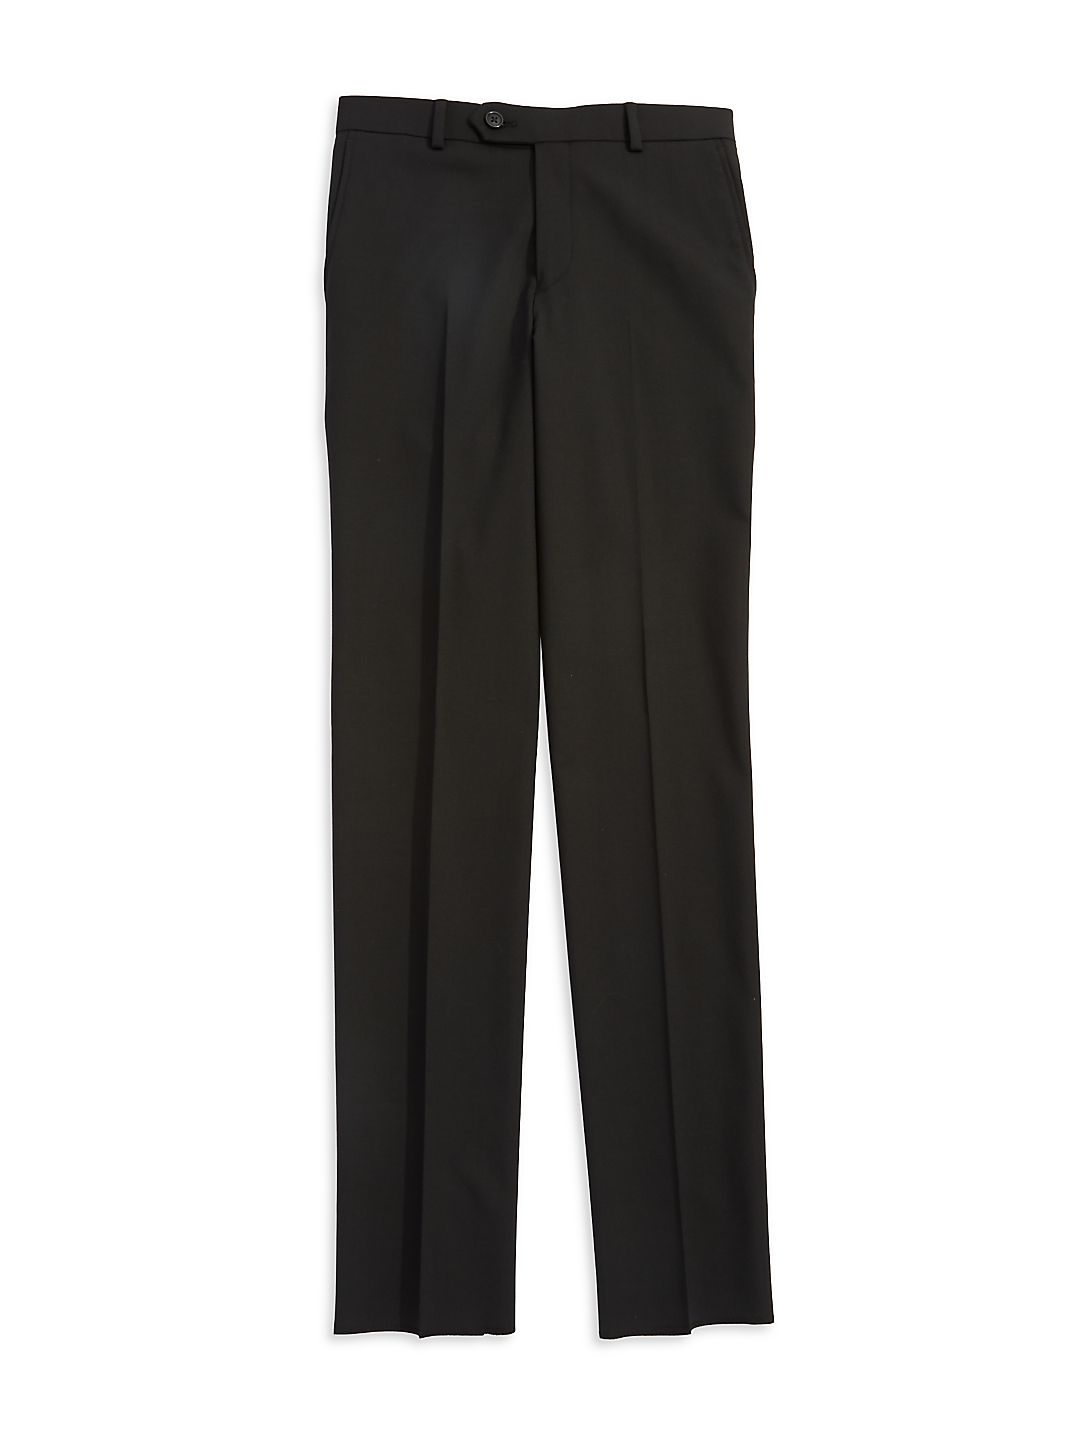 Unhemmed Dress Pants